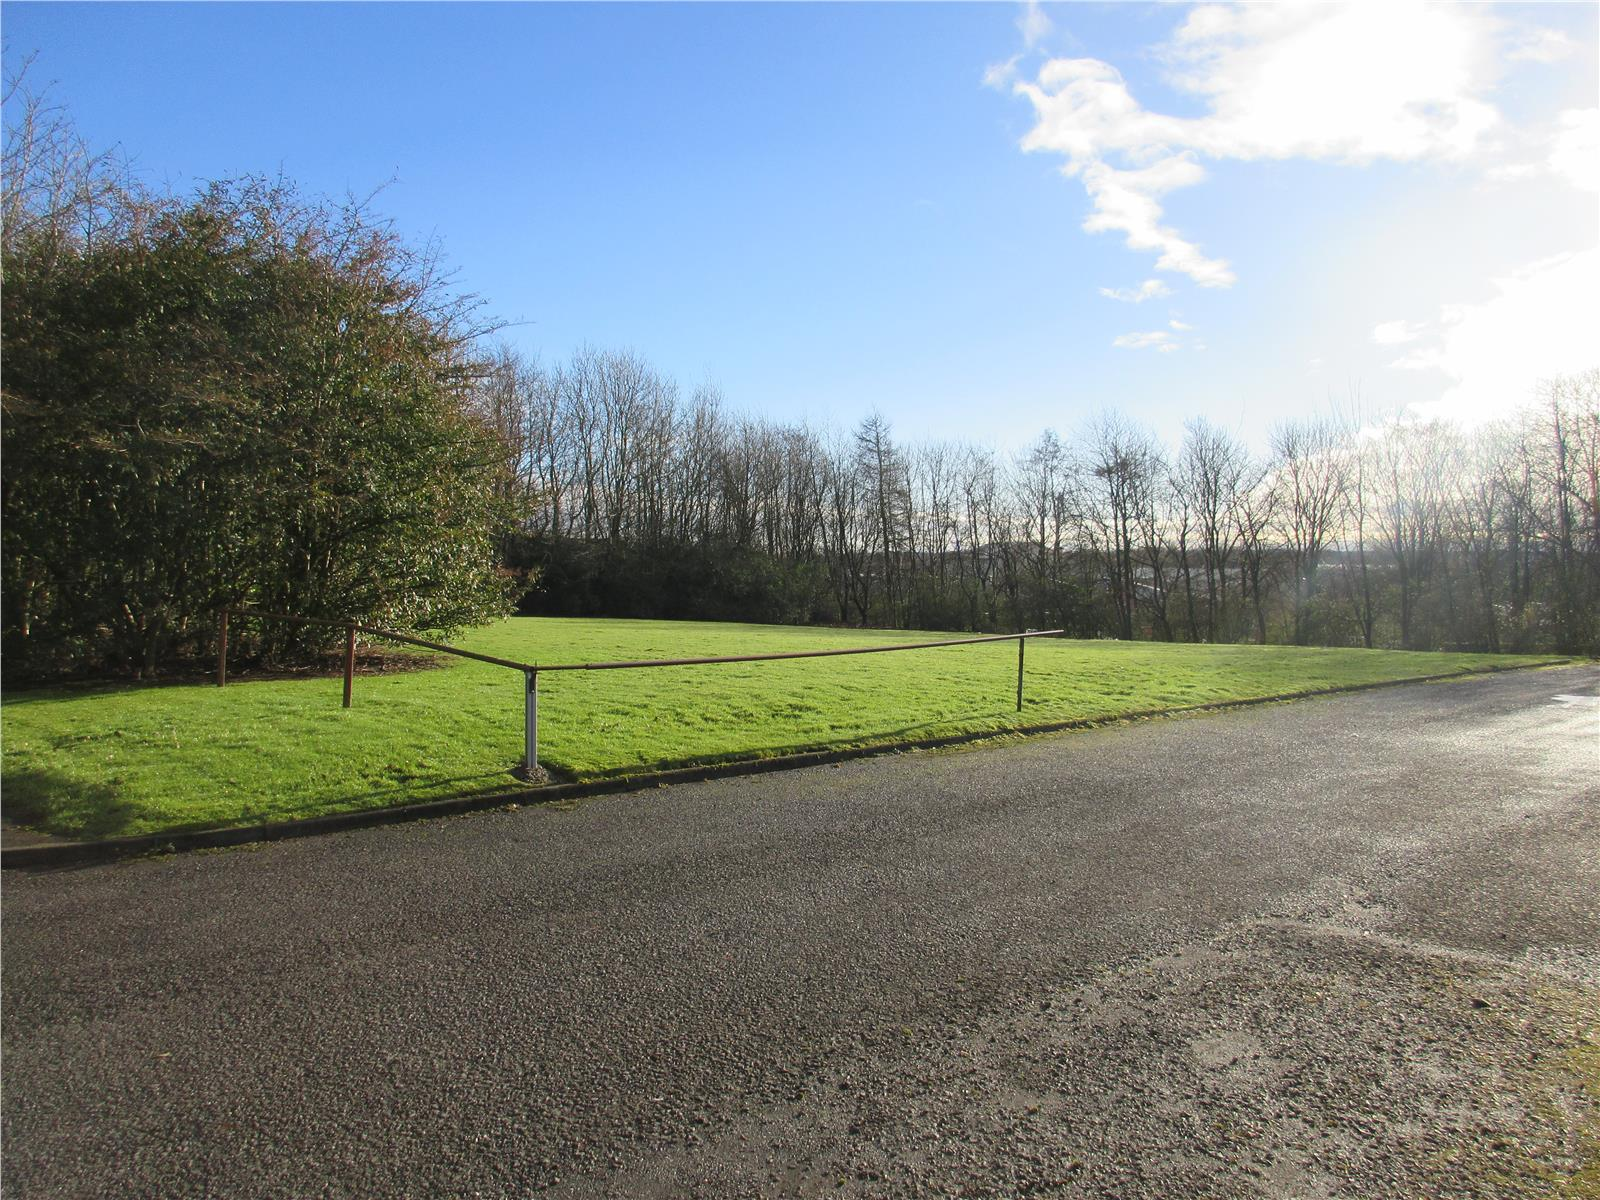 Development Land, Nasmyth Road, Southfield Industrial Estate, Glenrothes, Fife